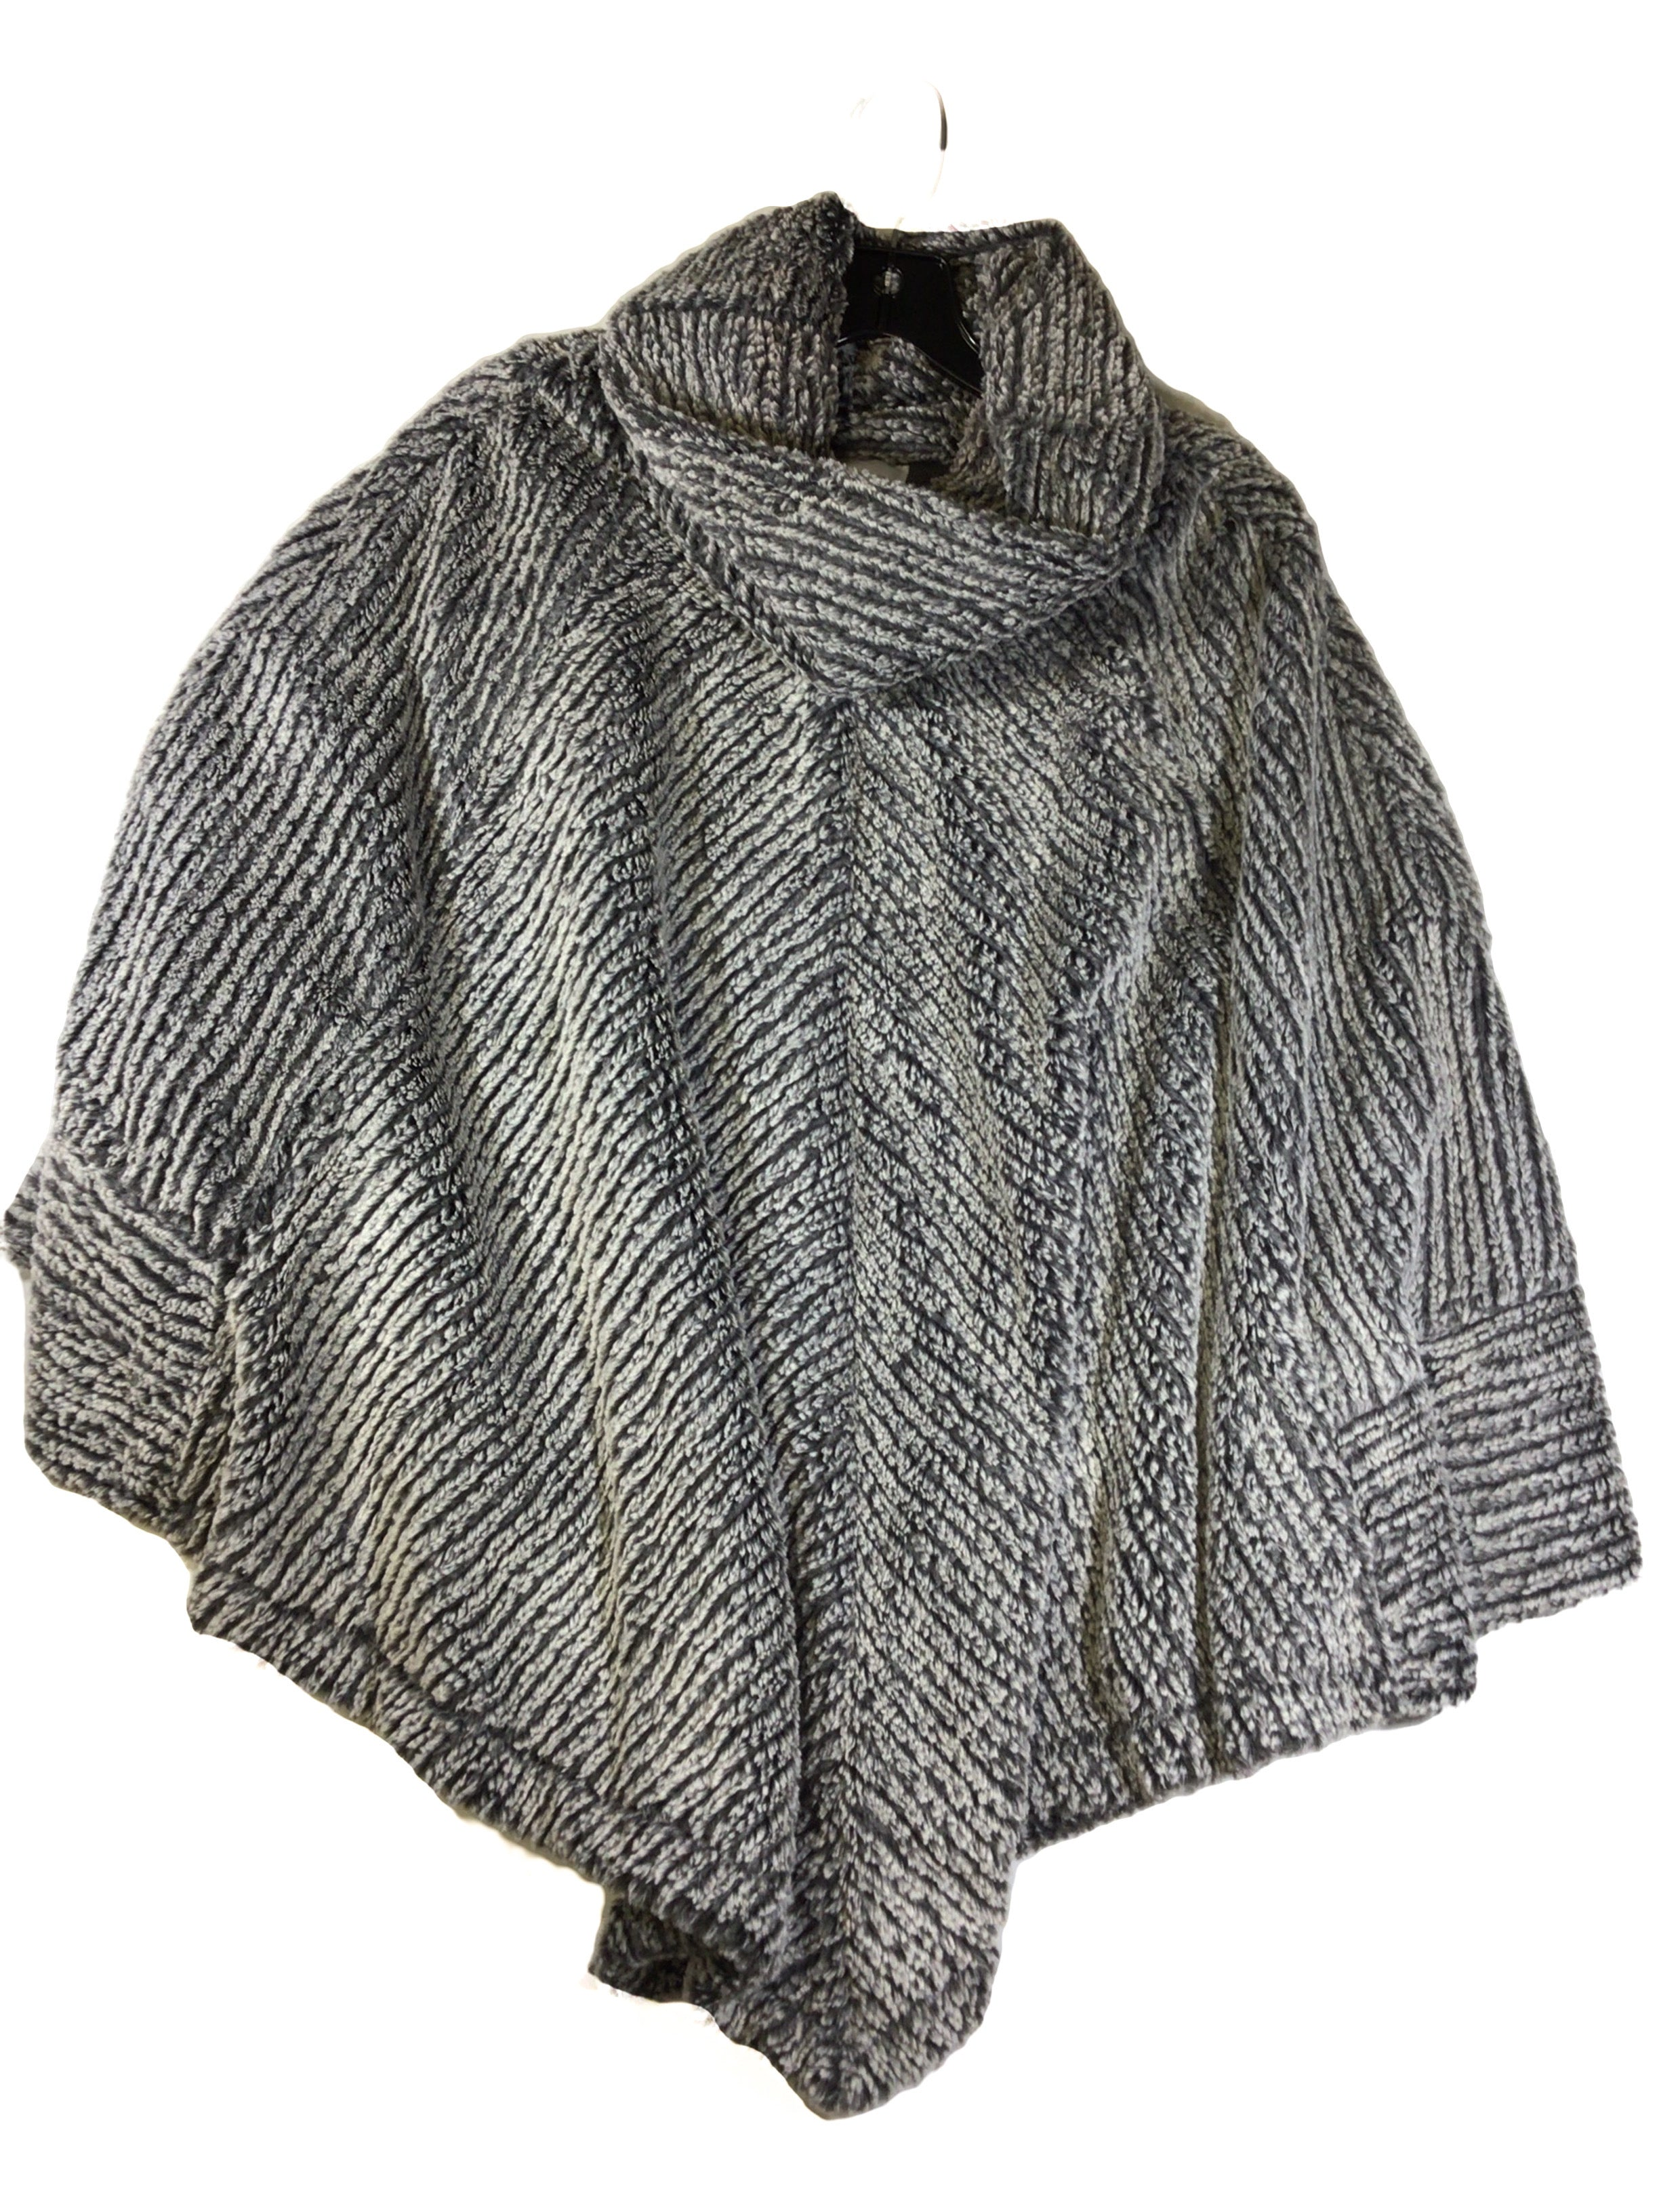 Primary Photo - BRAND:  CMB <BR>STYLE: PONCHO <BR>COLOR: GREY <BR>SIZE: XL <BR>OTHER INFO: TESS ELLIOT STUDIO - <BR>SKU: 213-21394-43684